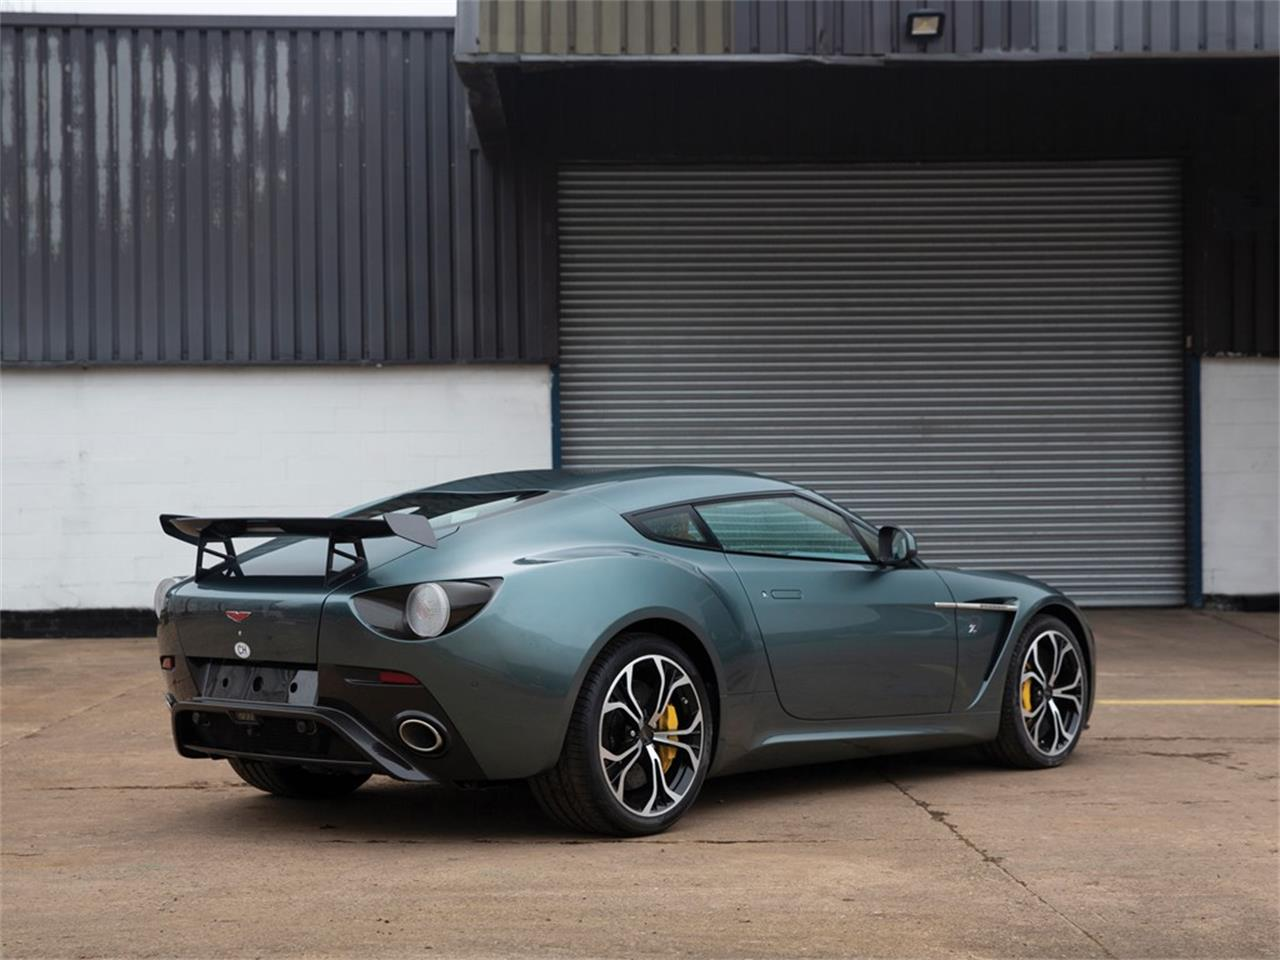 Large Picture of 2012 Aston Martin V12 Zagato located in  Auction Vehicle - Q37F